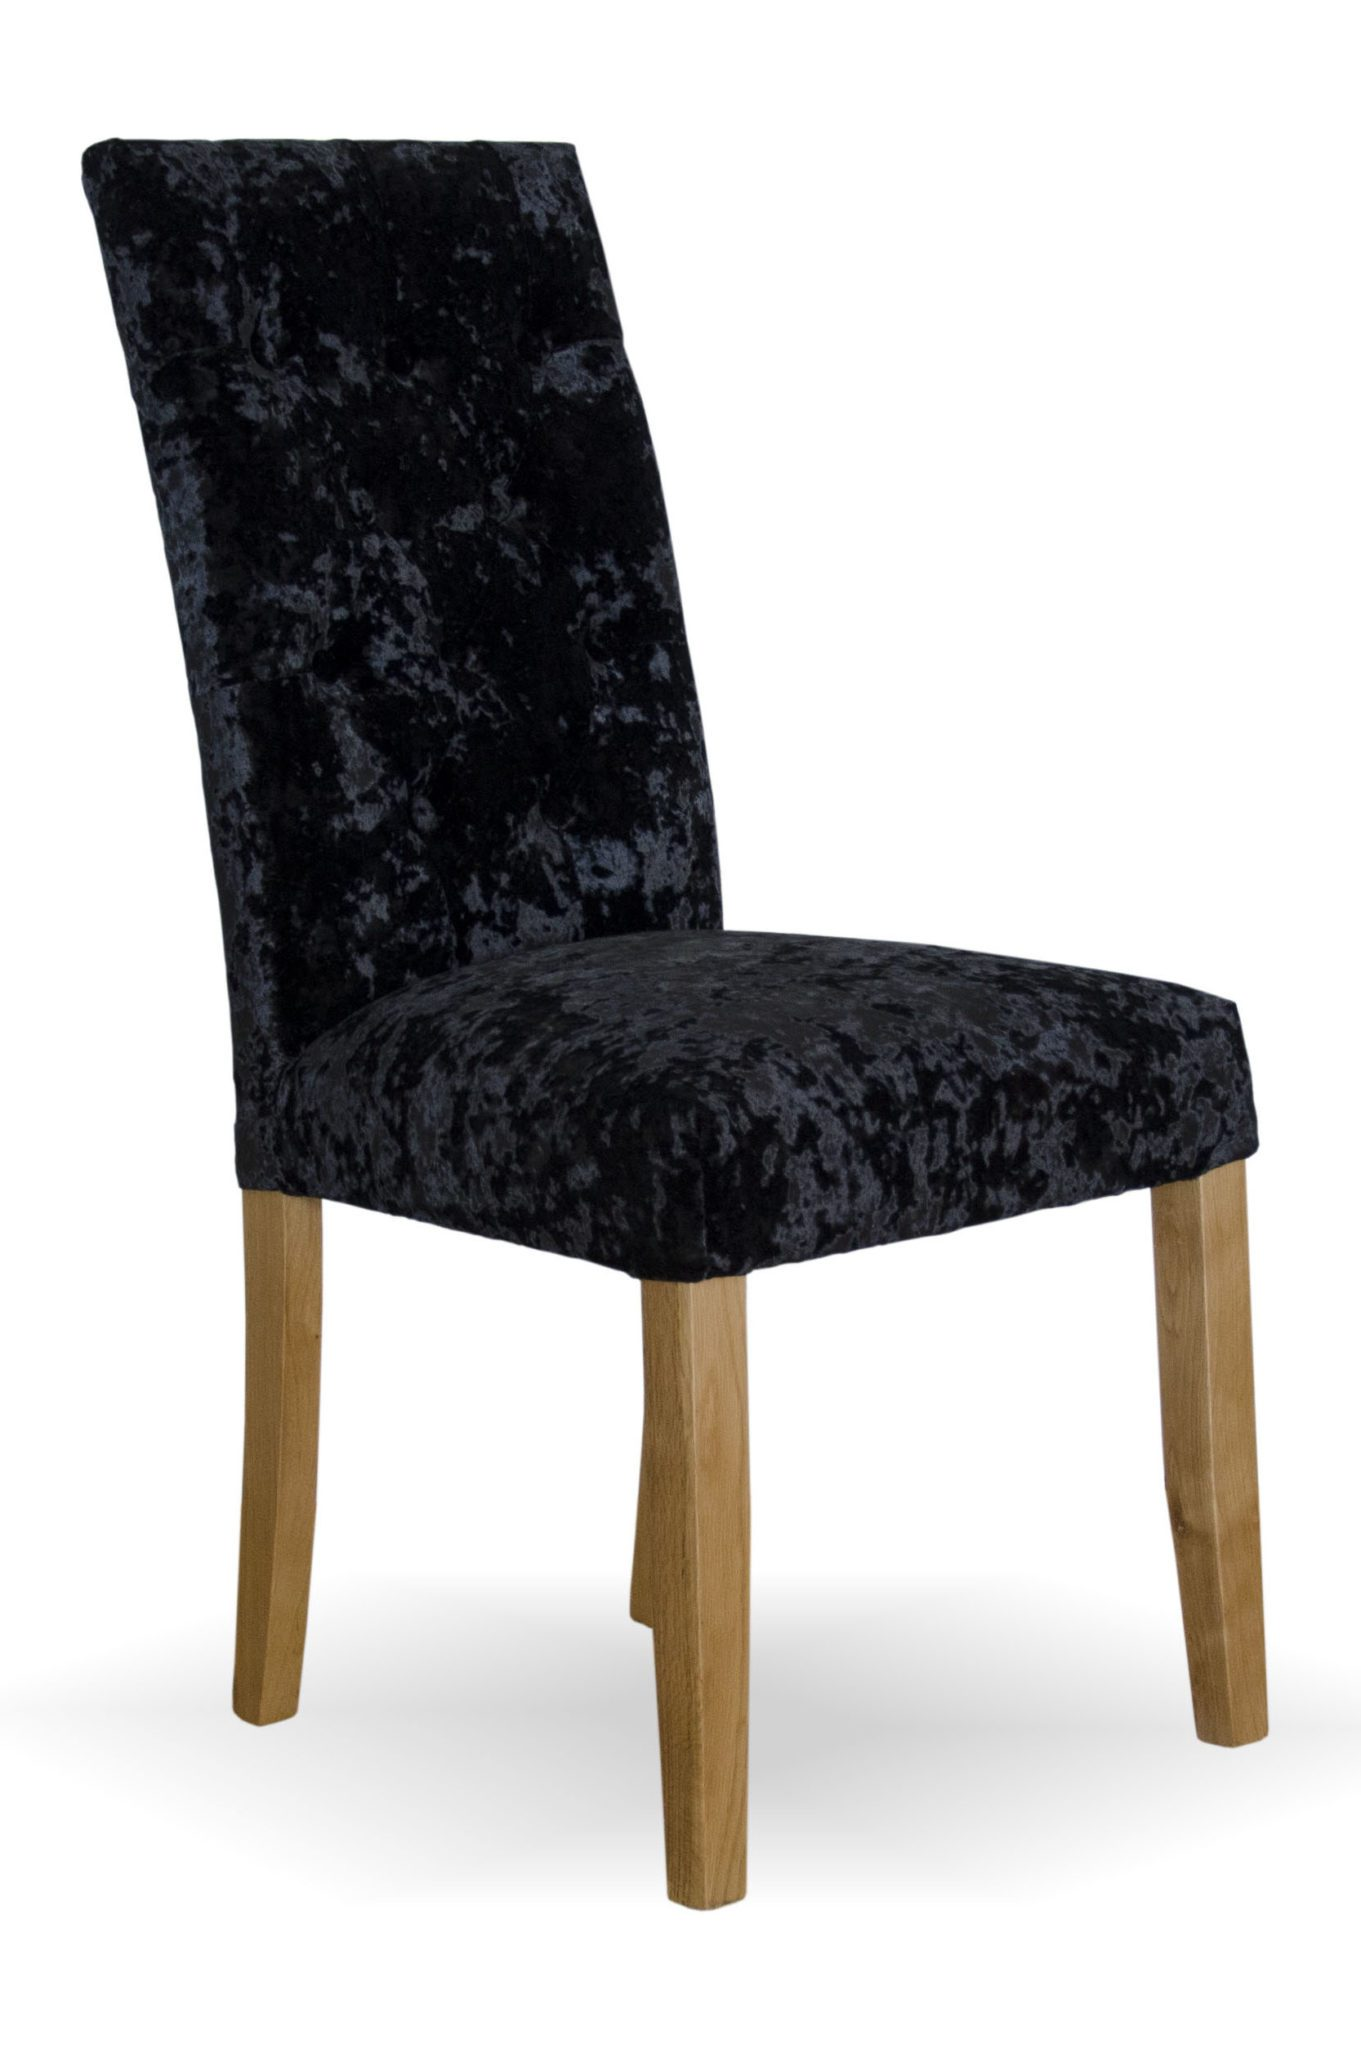 Stockholm Chair deep black crushed